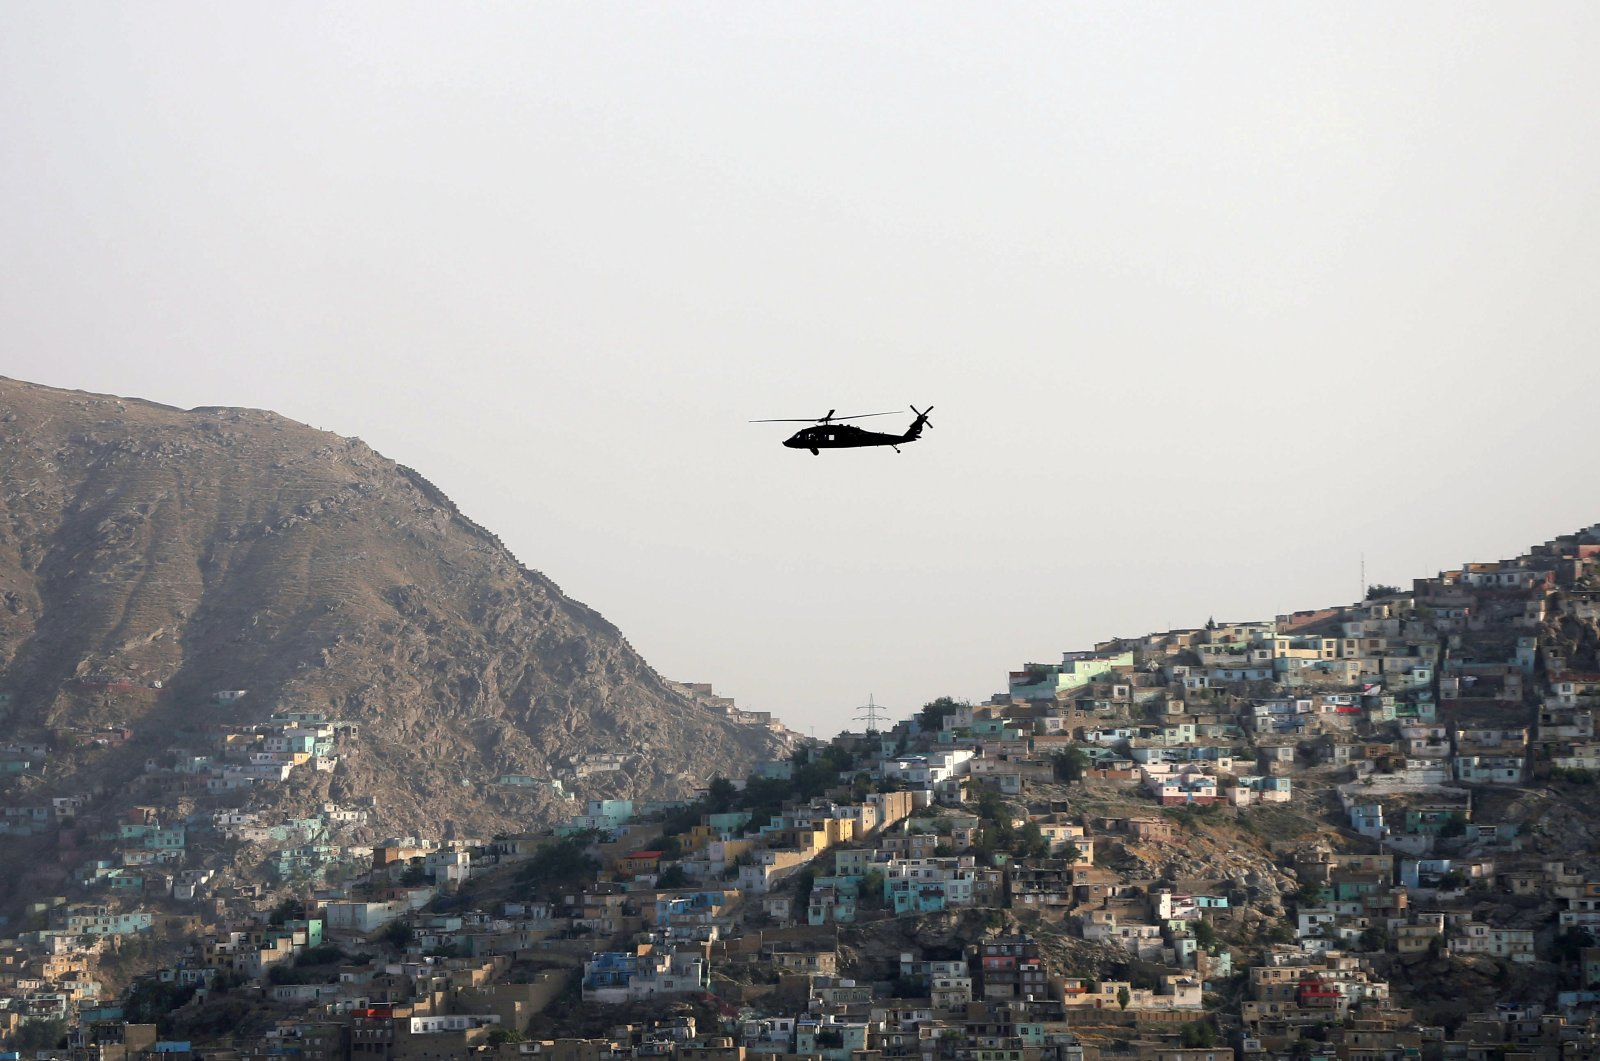 A NATO helicopter flies over the city of Kabul, Afghanistan, June 29. 2020. (Reuters Photo)